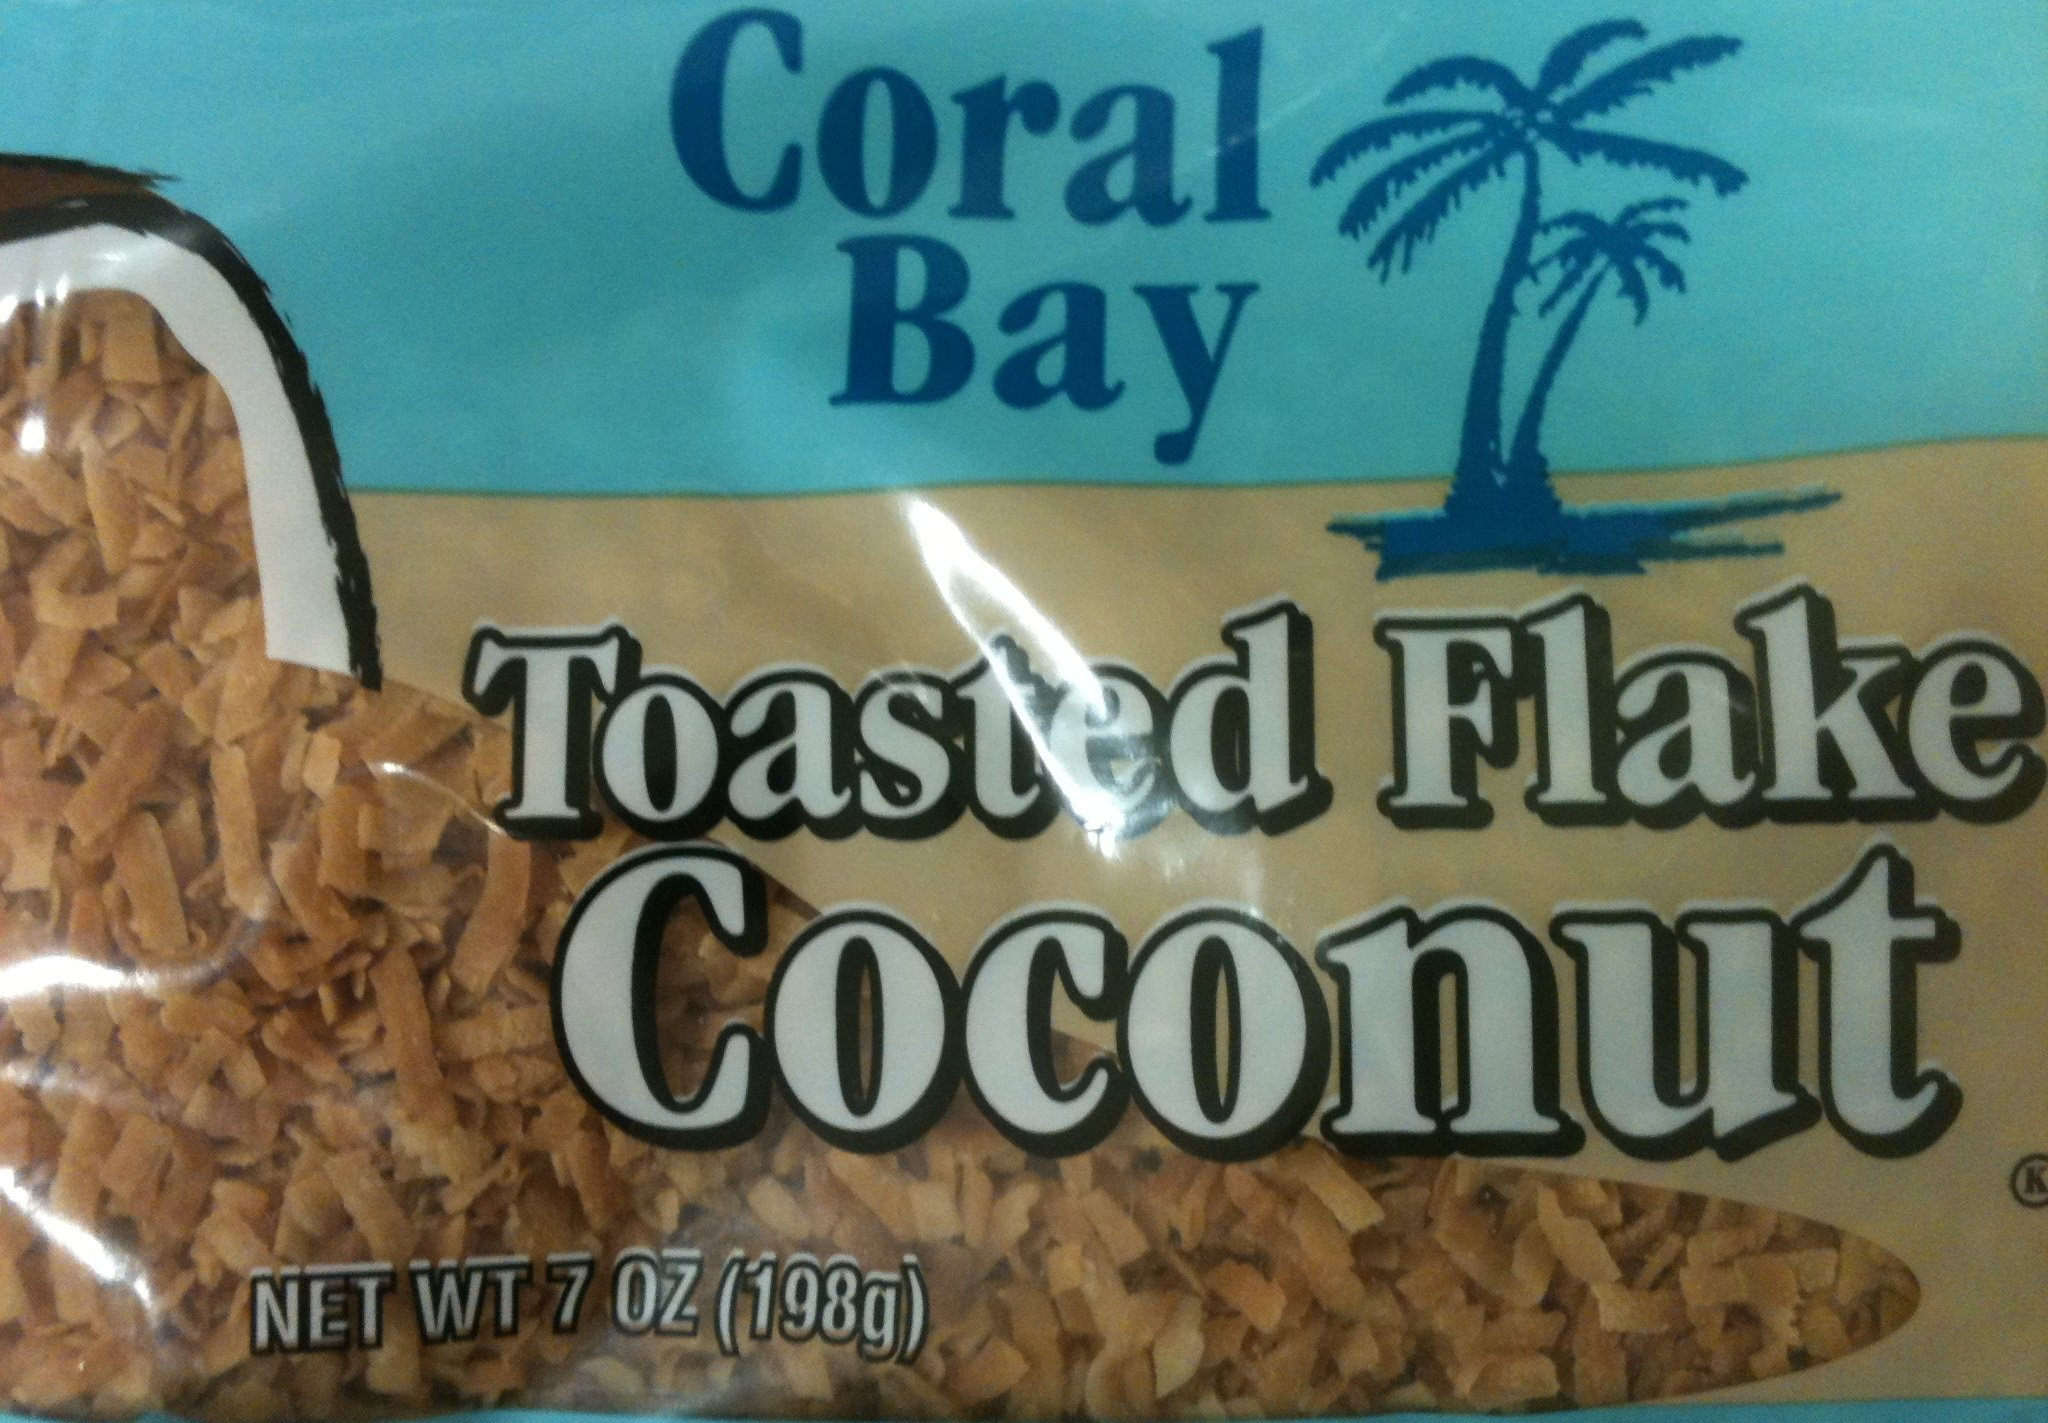 Coral Bay Toasted Flaked Coconut 7oz Bag (Pack of 6)